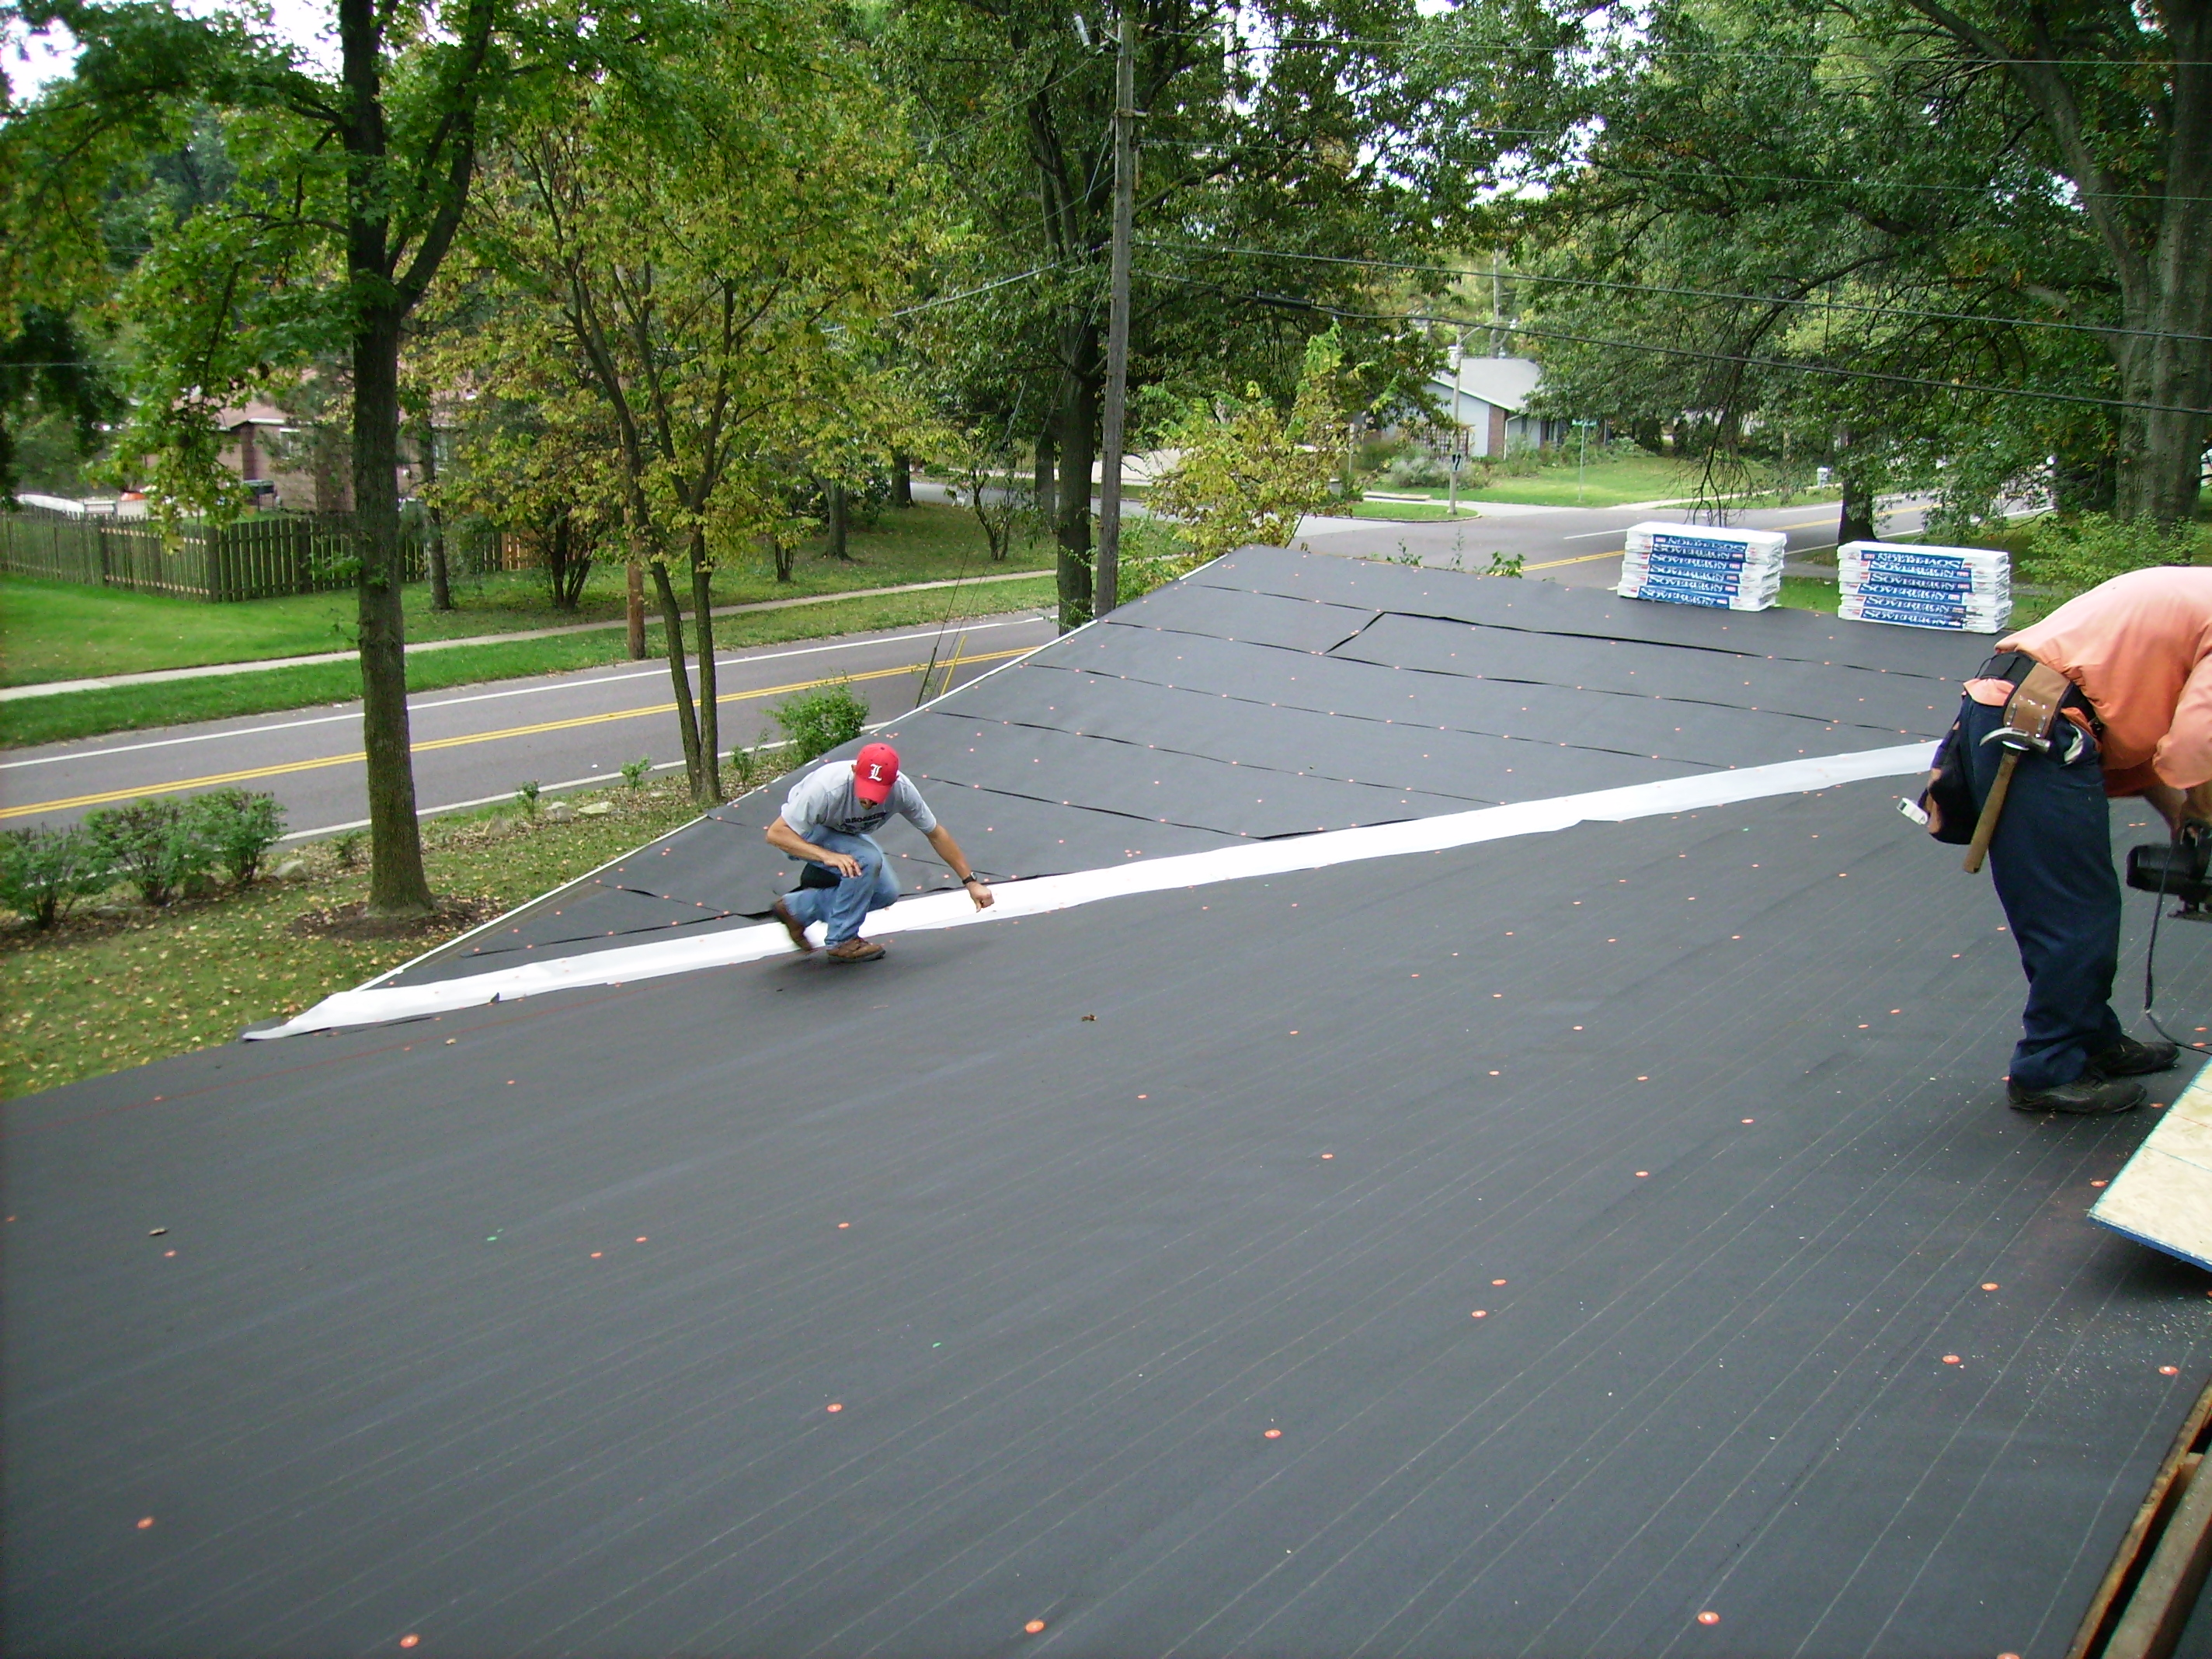 Roofing Repair Services Emergency Roof Leak Repair Costs